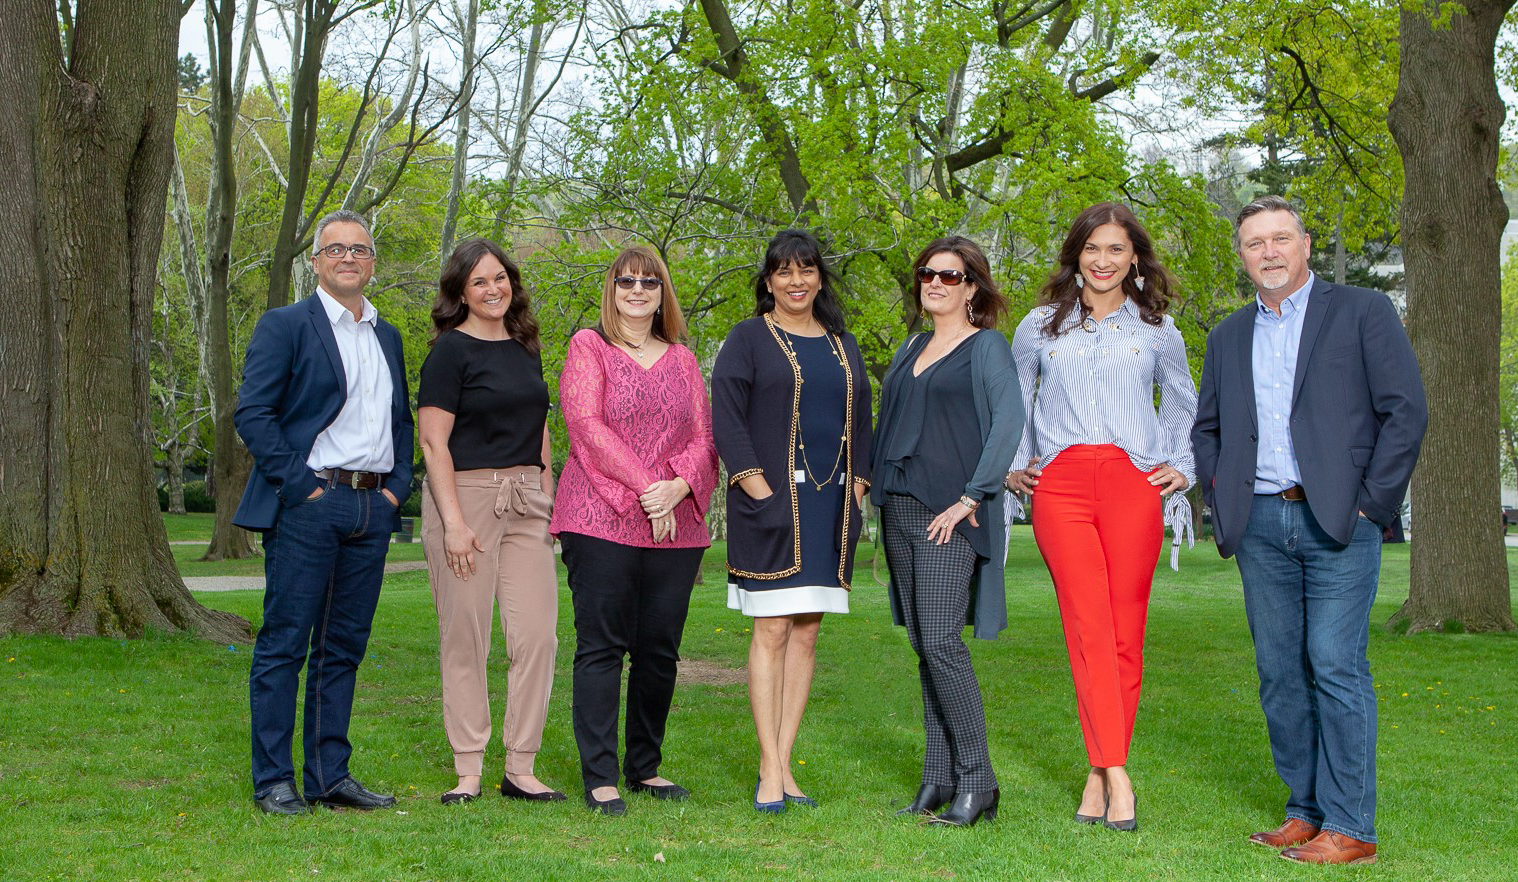 Leadership team from left to right: Vlad Bartchouk, Mary Jackson, Nadina Salciccioli, Mila Ray-Daniels, Candy Sarraf, Joanna Pajak, Steve Dawn. Staff members are standing in a row on lush green grass in a park like setting, surrounded by many large trees.